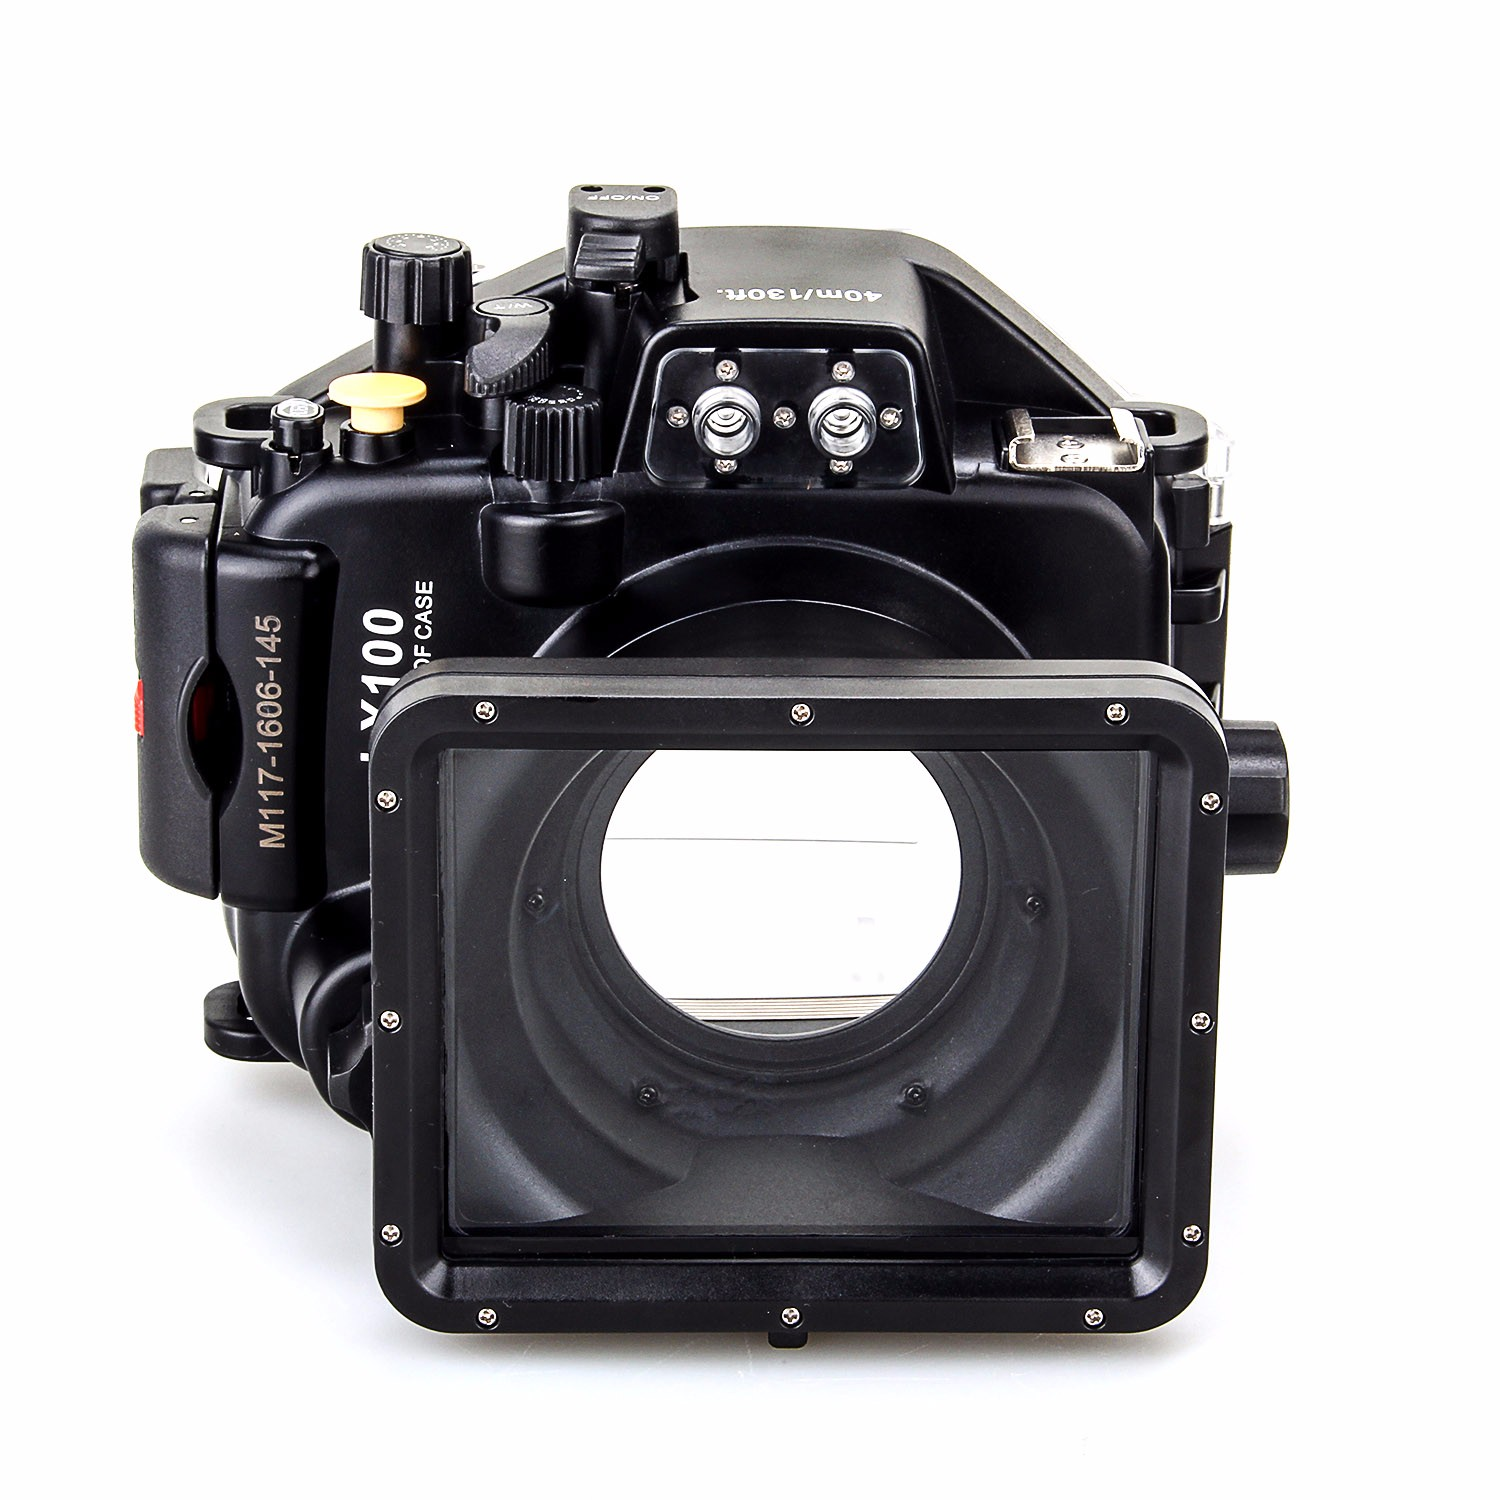 40M/130ft Underwater Housing for <font><b>Panasonic</b></font> <font><b>Lumix</b></font> <font><b>LX100</b></font> with 27-75mm Lens image